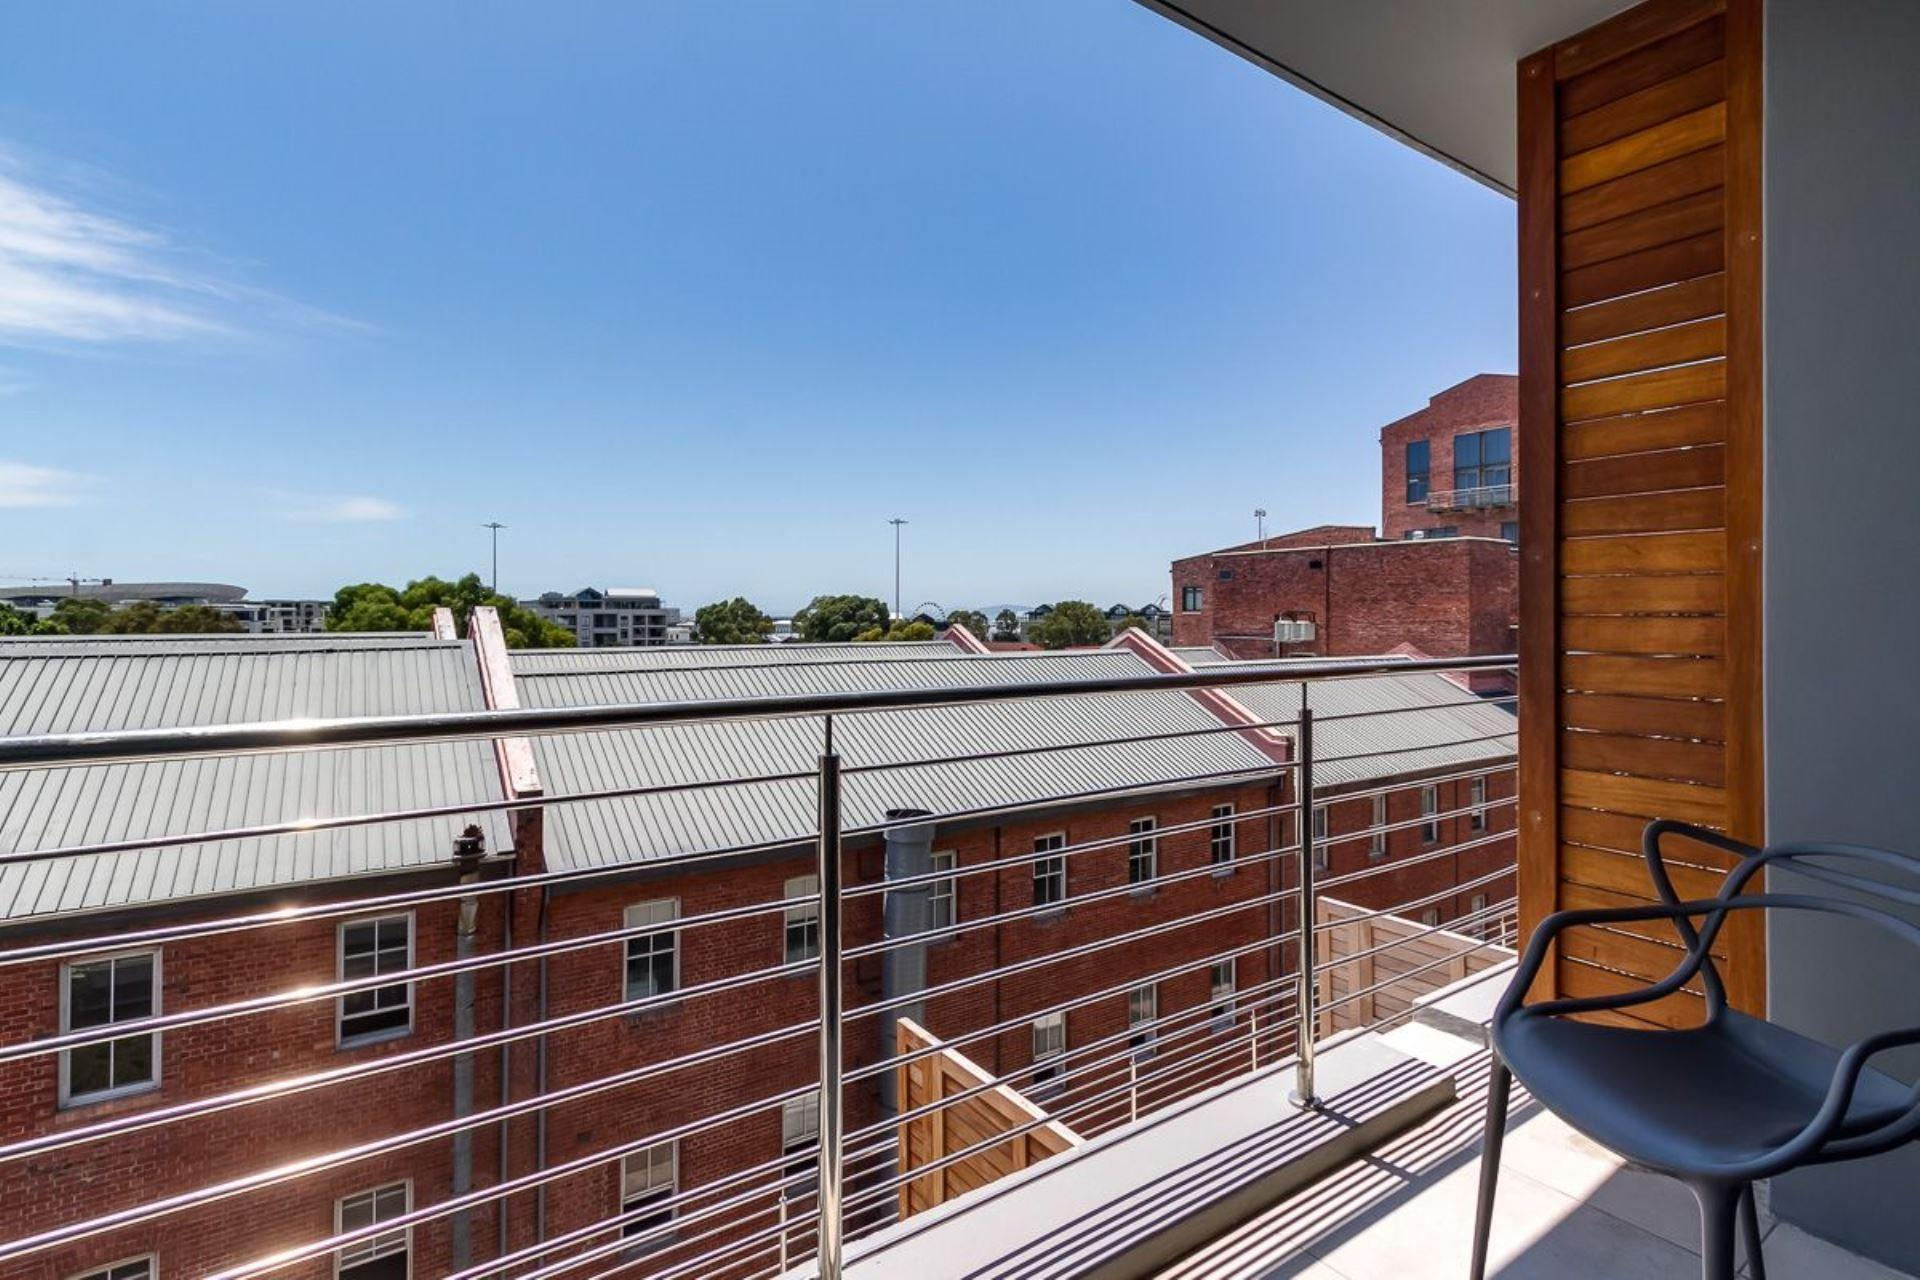 1 Bedroom House For Sale in Cape Town City Centre